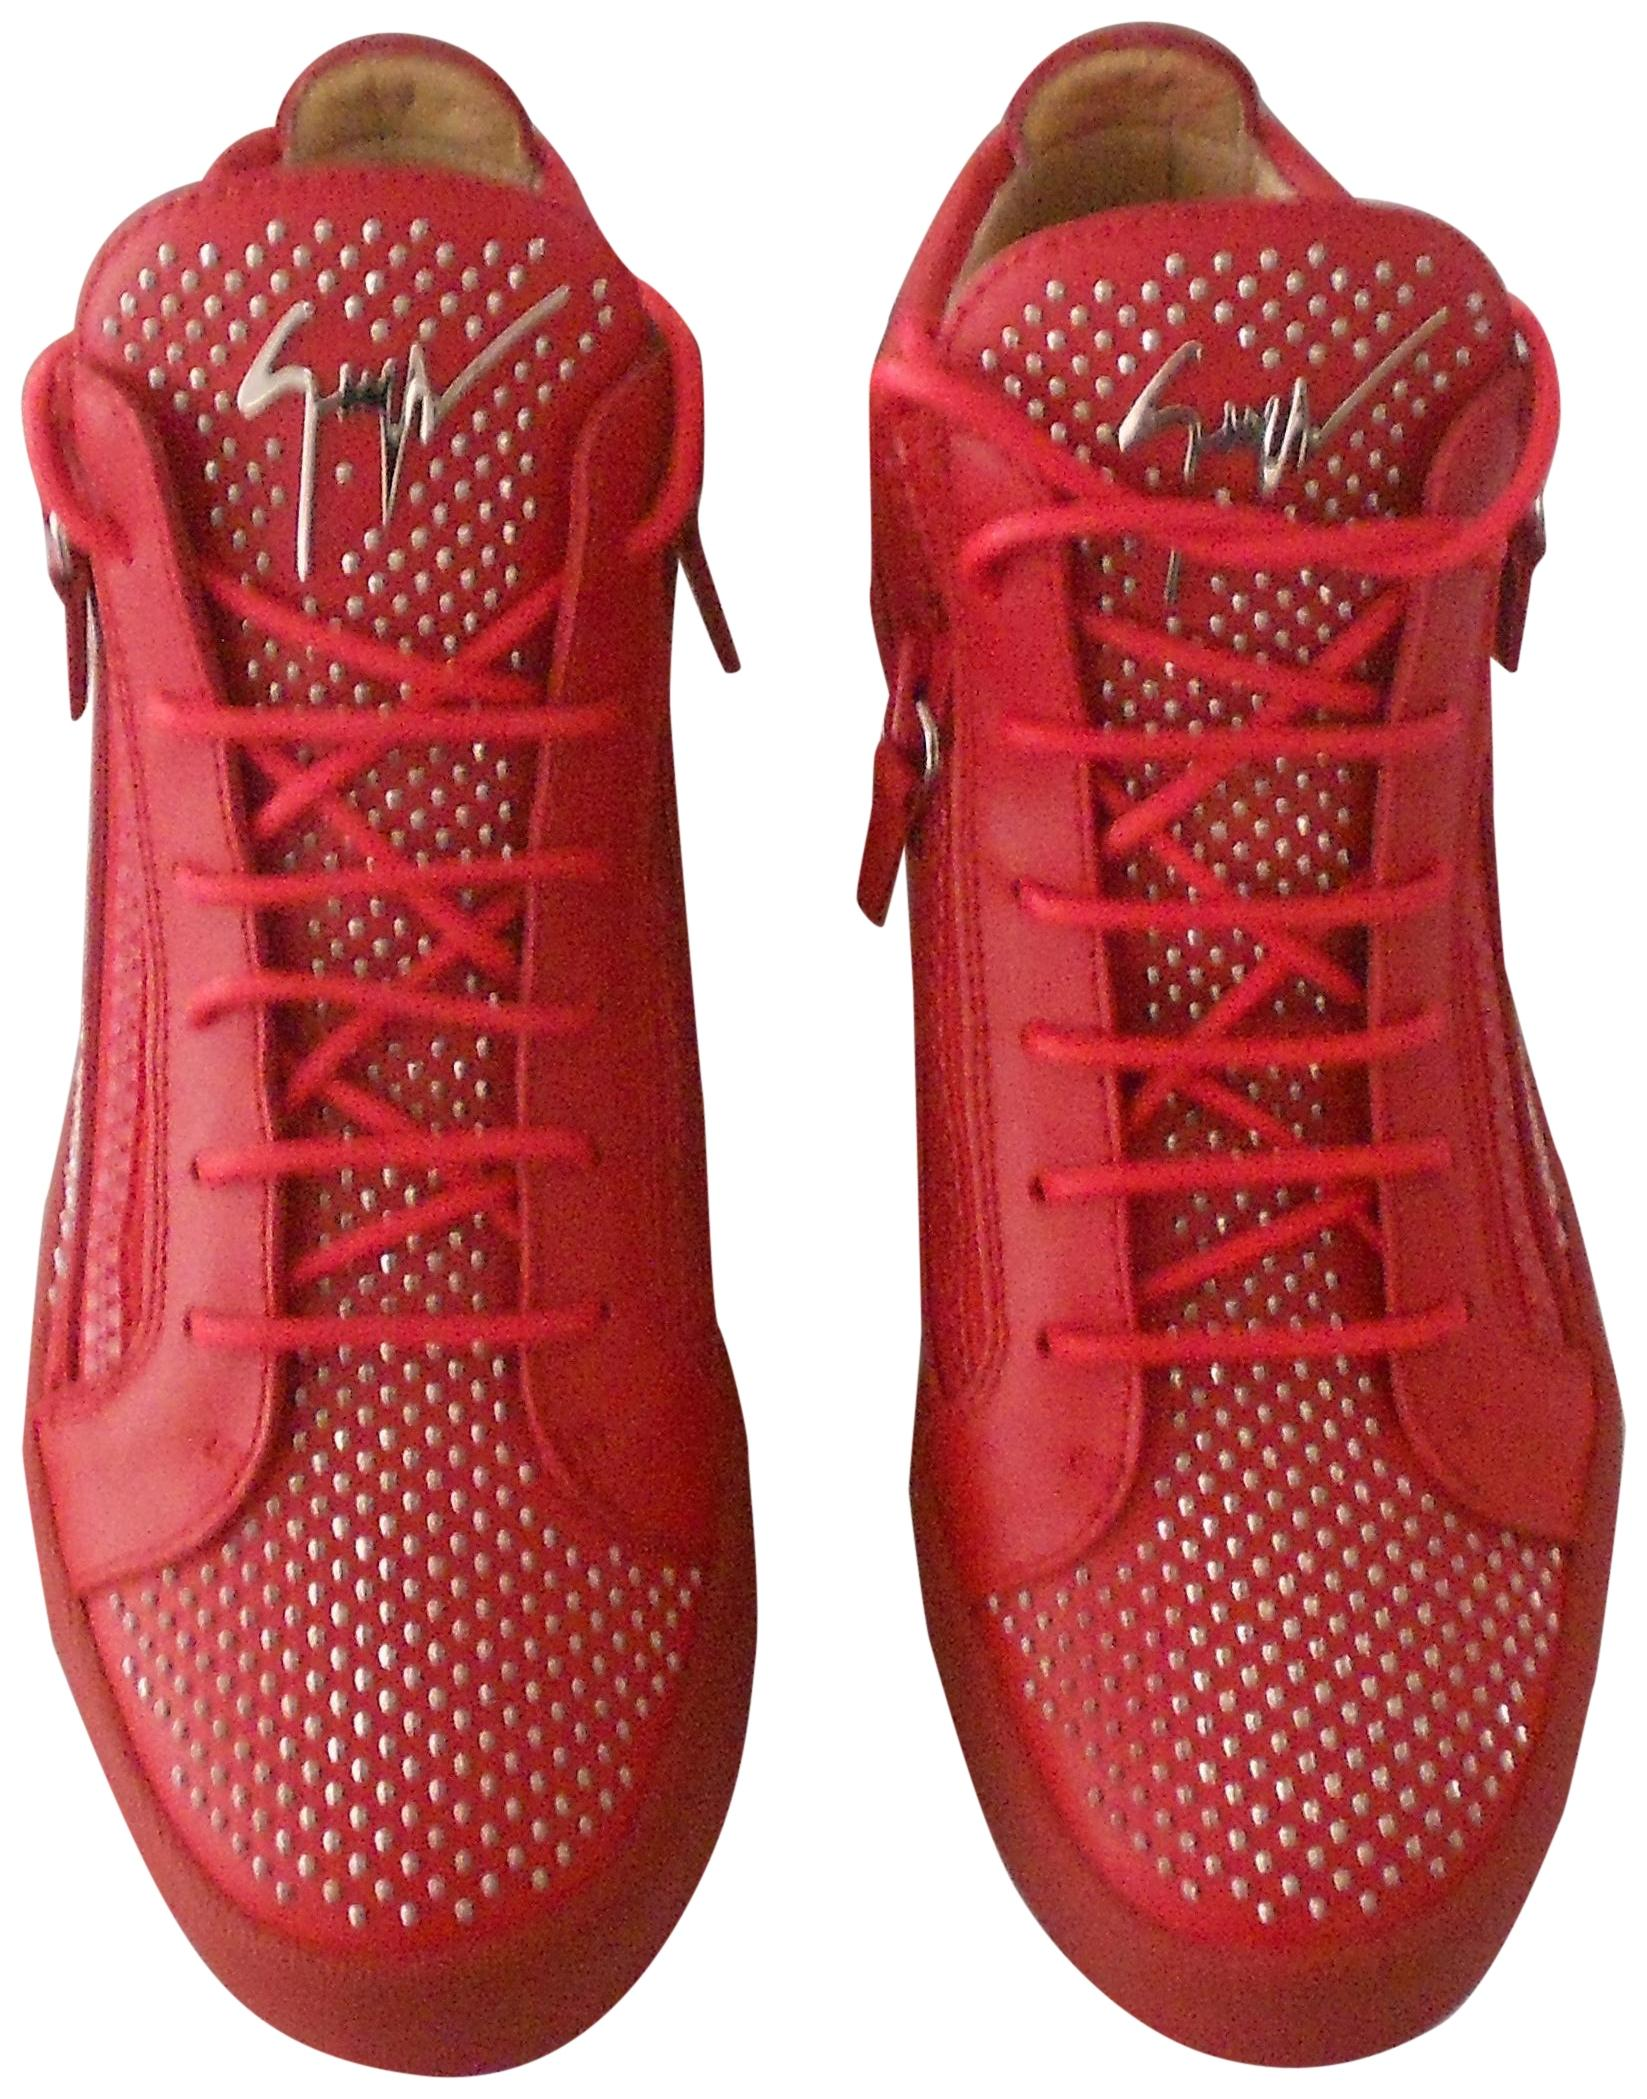 "Giuseppe Zanotti Red ""Rw6086 Connor"" Studded Women's Mid Top Leather Sneakers Sneakers Size EU 39.5 (Approx. US 9.5) Regular (M, B)"